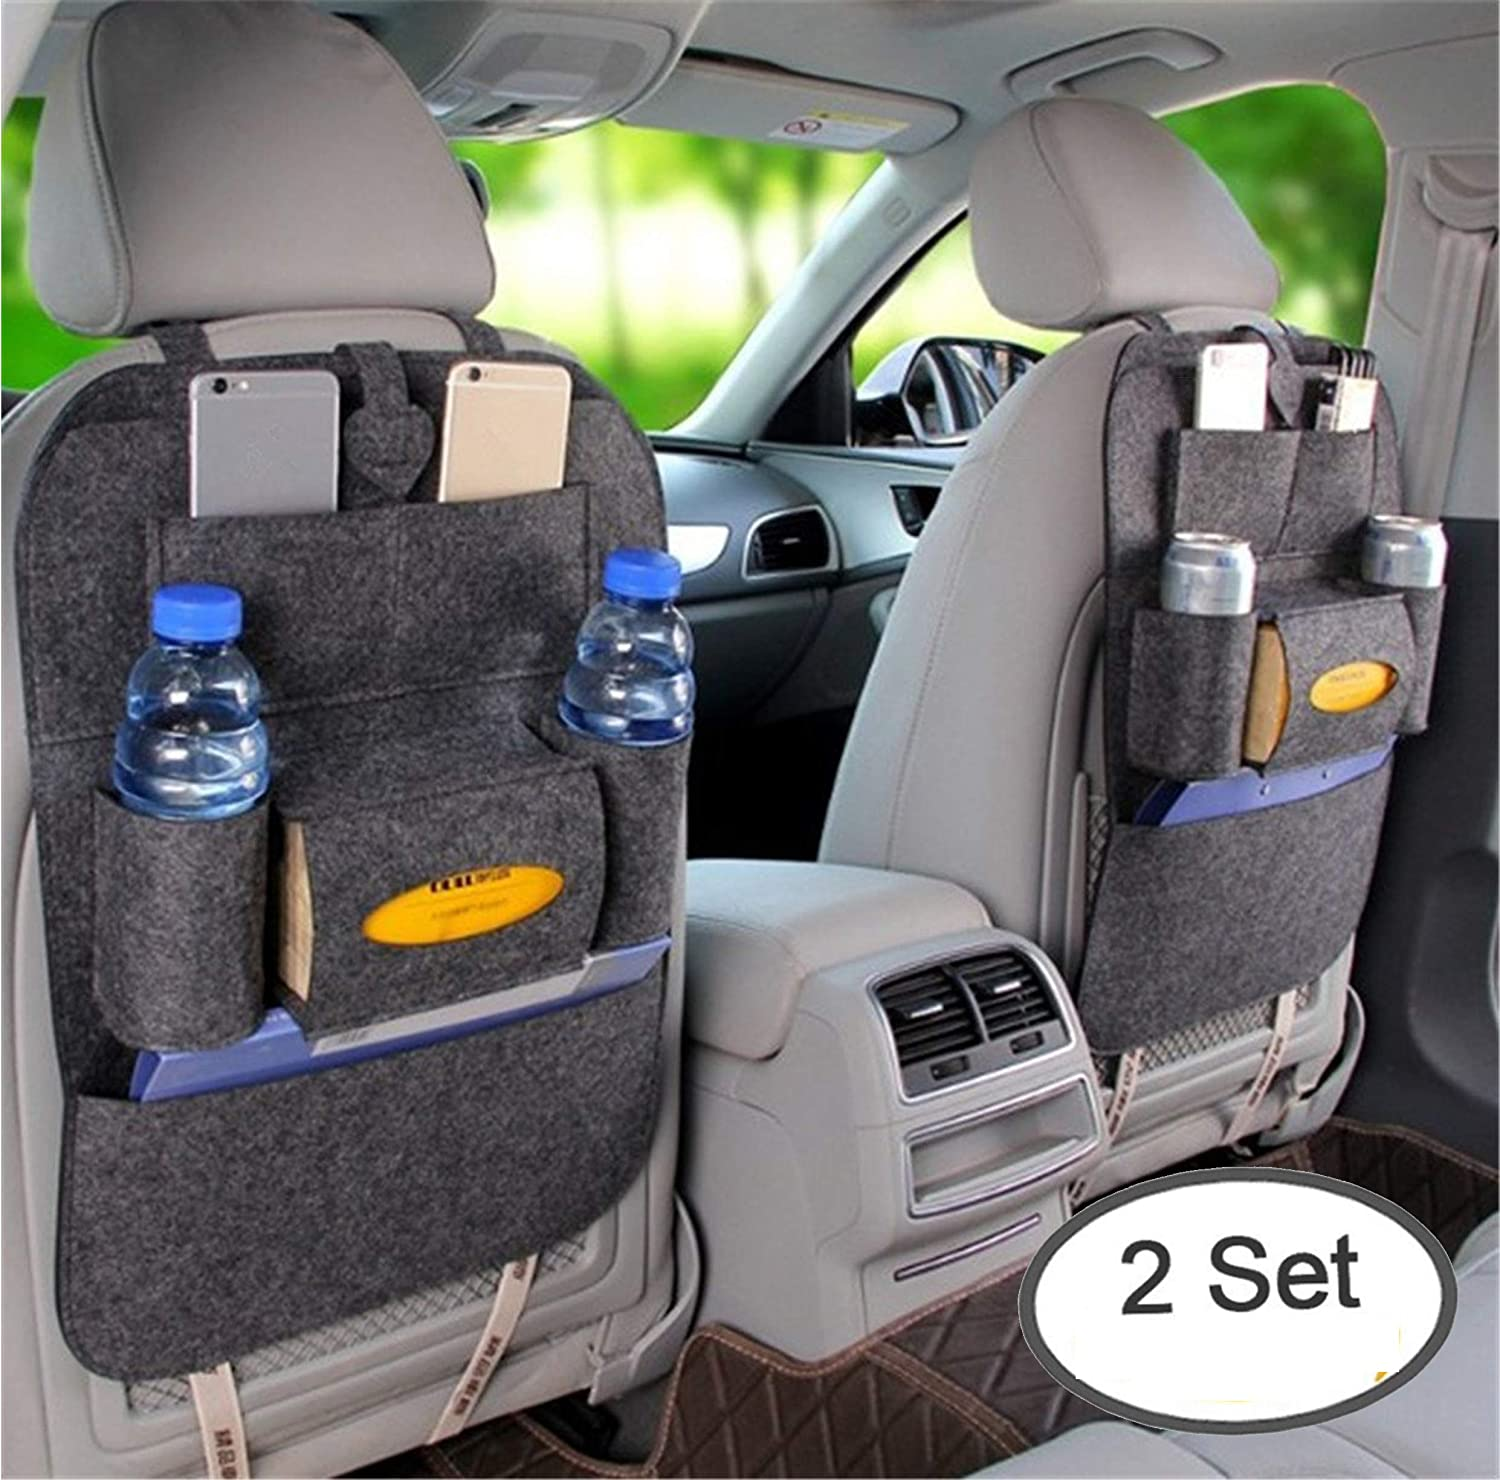 2 Packs Car Backseat Organizer Woolen Felt Seat Pocket Protector Storage for Bottle, Tissue Box, Toys, Kick Mats with Multi-pocket Organizer (Dark Grey) Fantastic Day